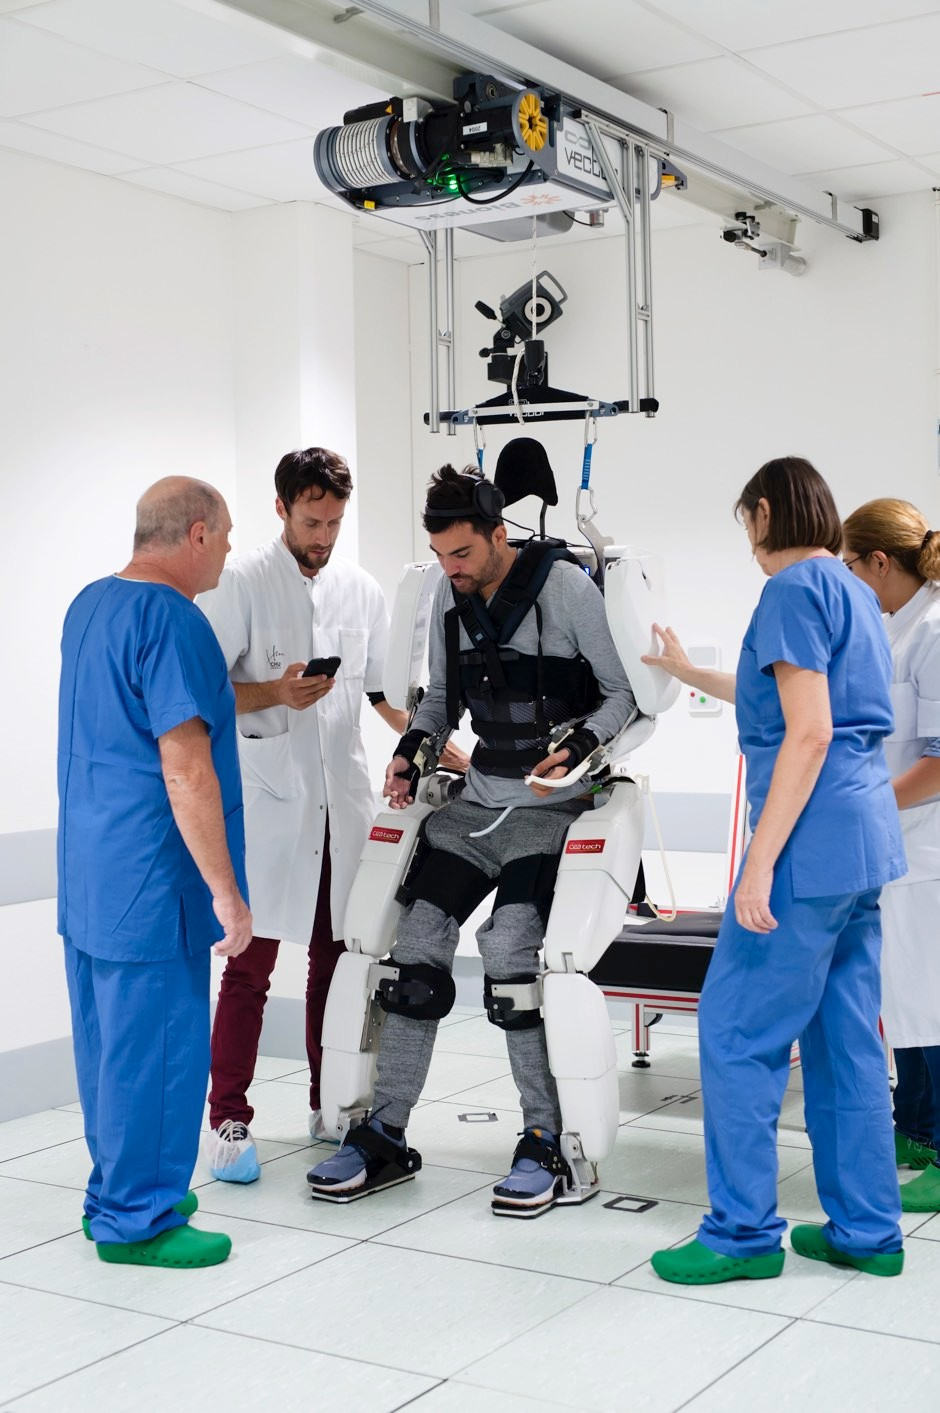 Thibault is able to walk while wearing an exoskeleton controlled by his brain signals © Clinatec/Juliette Treillet/PA